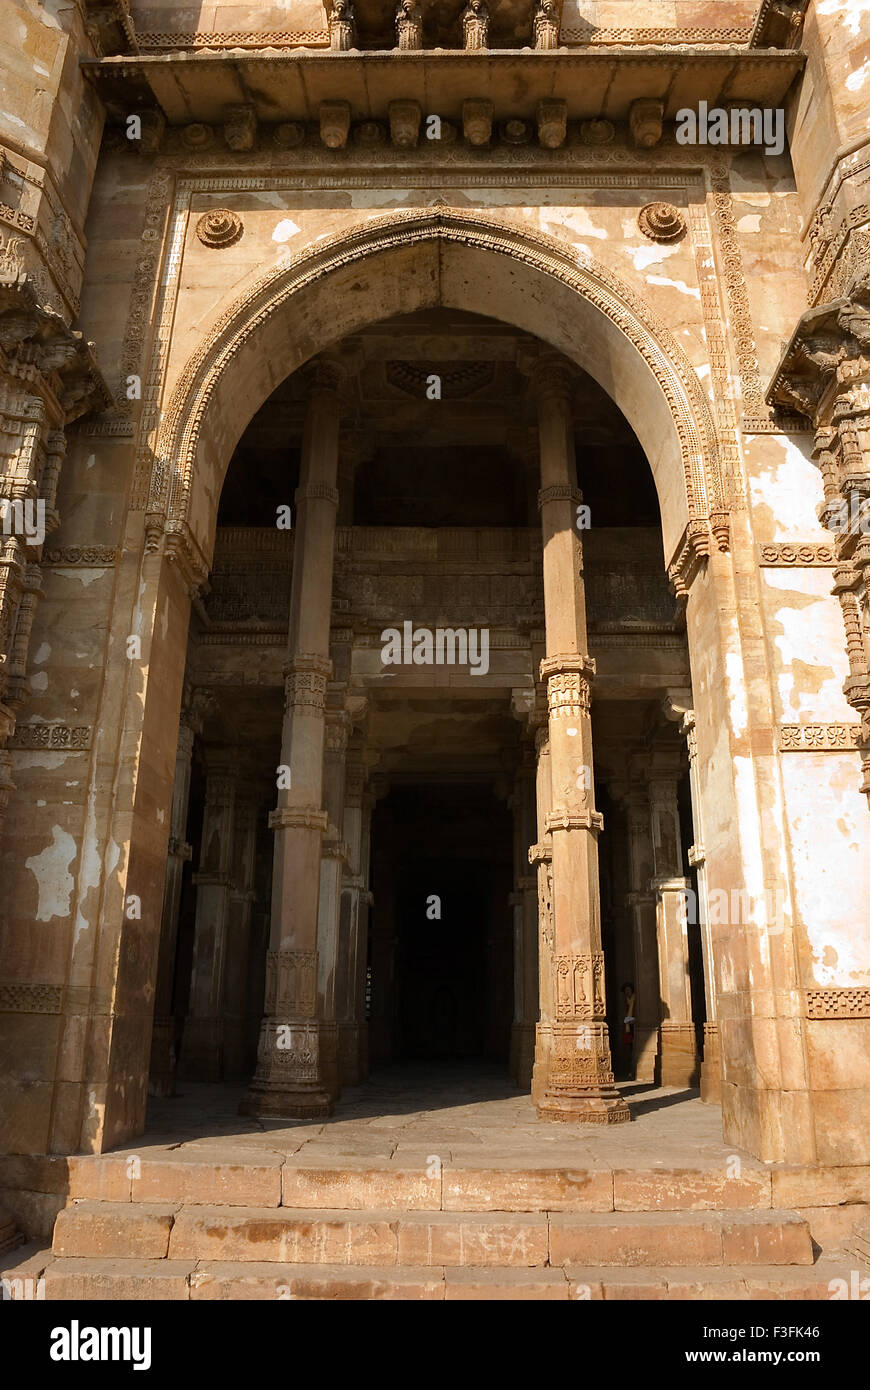 Champaner Pavagadh 15th century ruler Mahmud Begda Jami Masjid complex Archaeological park Champaner Gujarat Stock Photo